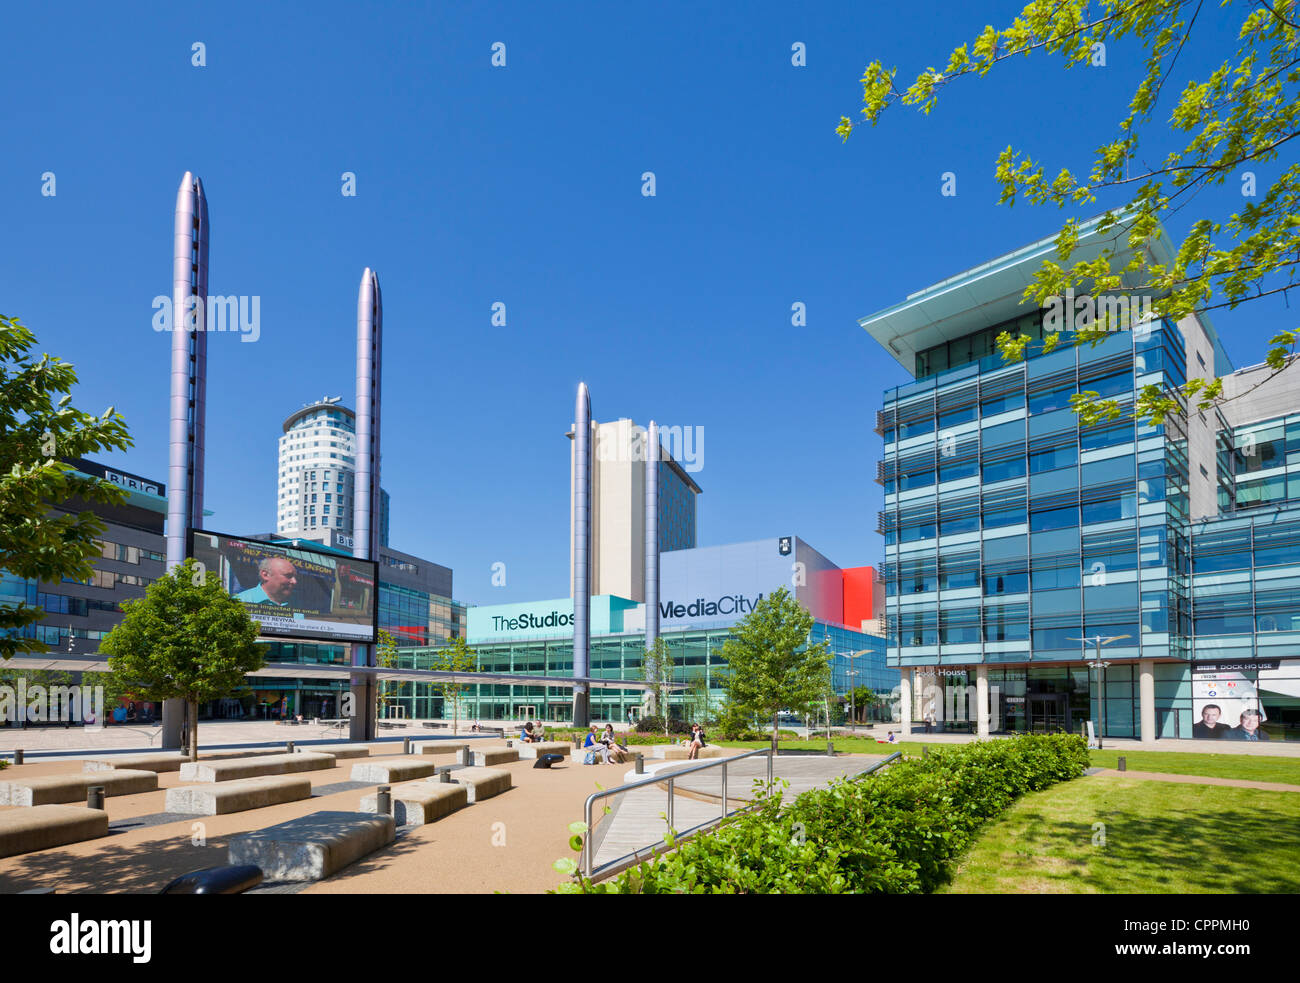 MediaCity UK BBC Television centre North salford quays manchester Greater Manchester England UK GB EU Europe - Stock Image